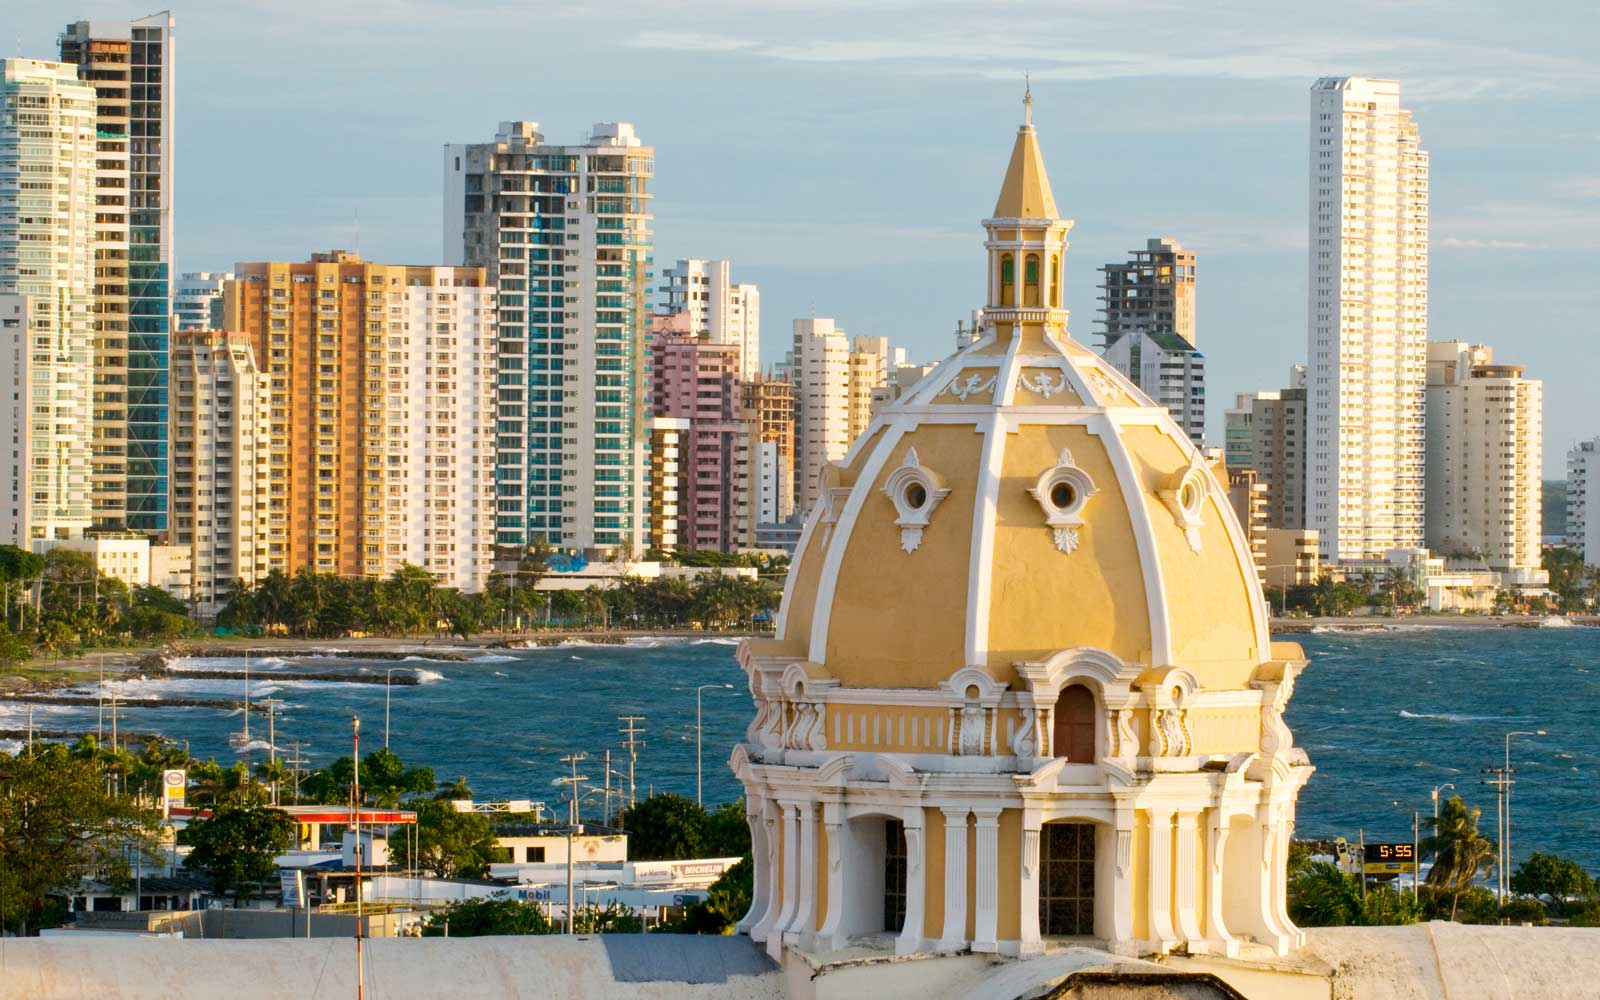 Cartagena's Old City Is Magical, but Don't Miss What's New